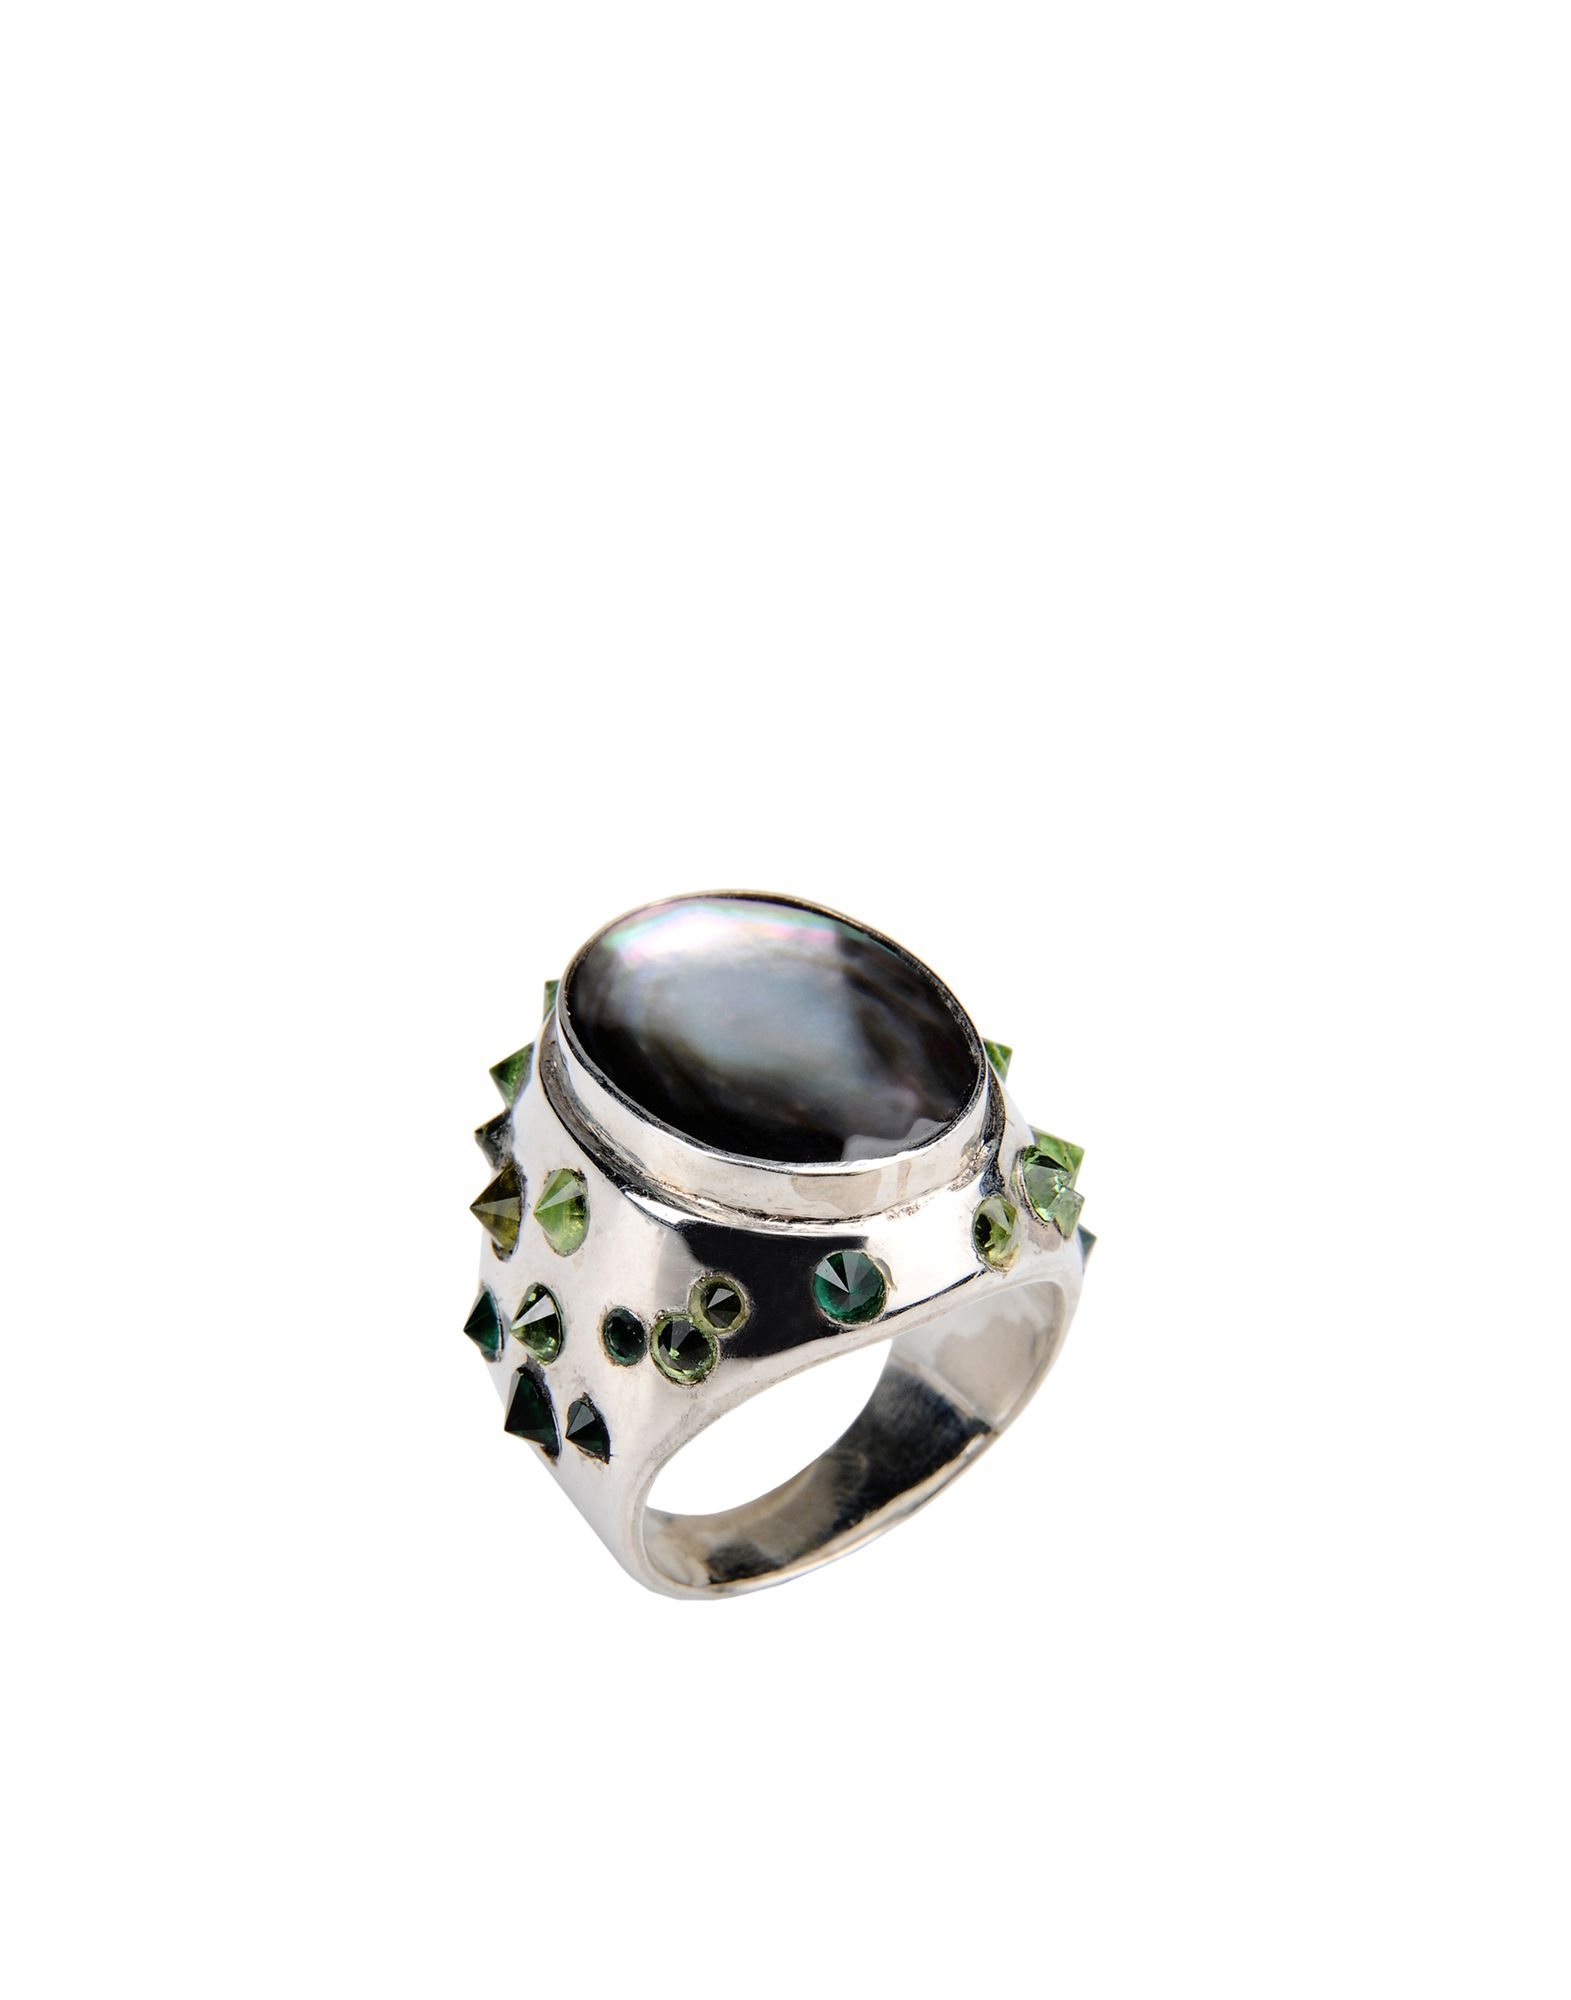 Studs On Grey Motherpearl Ring - Anello First People First - DESIGN+ART First People First - Acquista online su